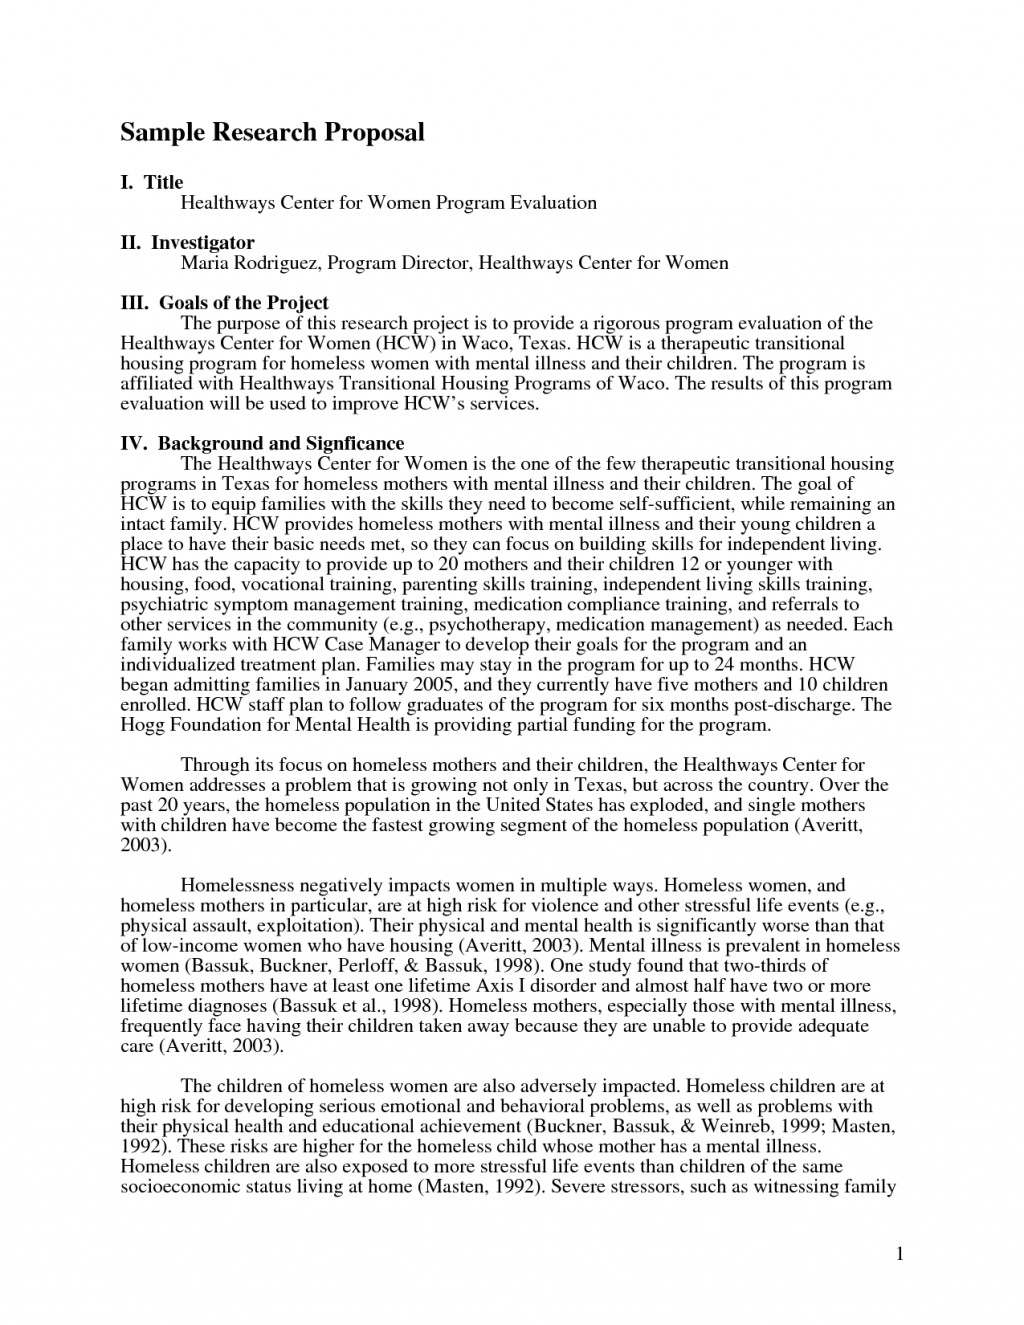 011 Research Paper Psychology Proposal Sample 612686 Writingn Introduction To Top Writing An A The Scientific Middle School Paragraph For Large